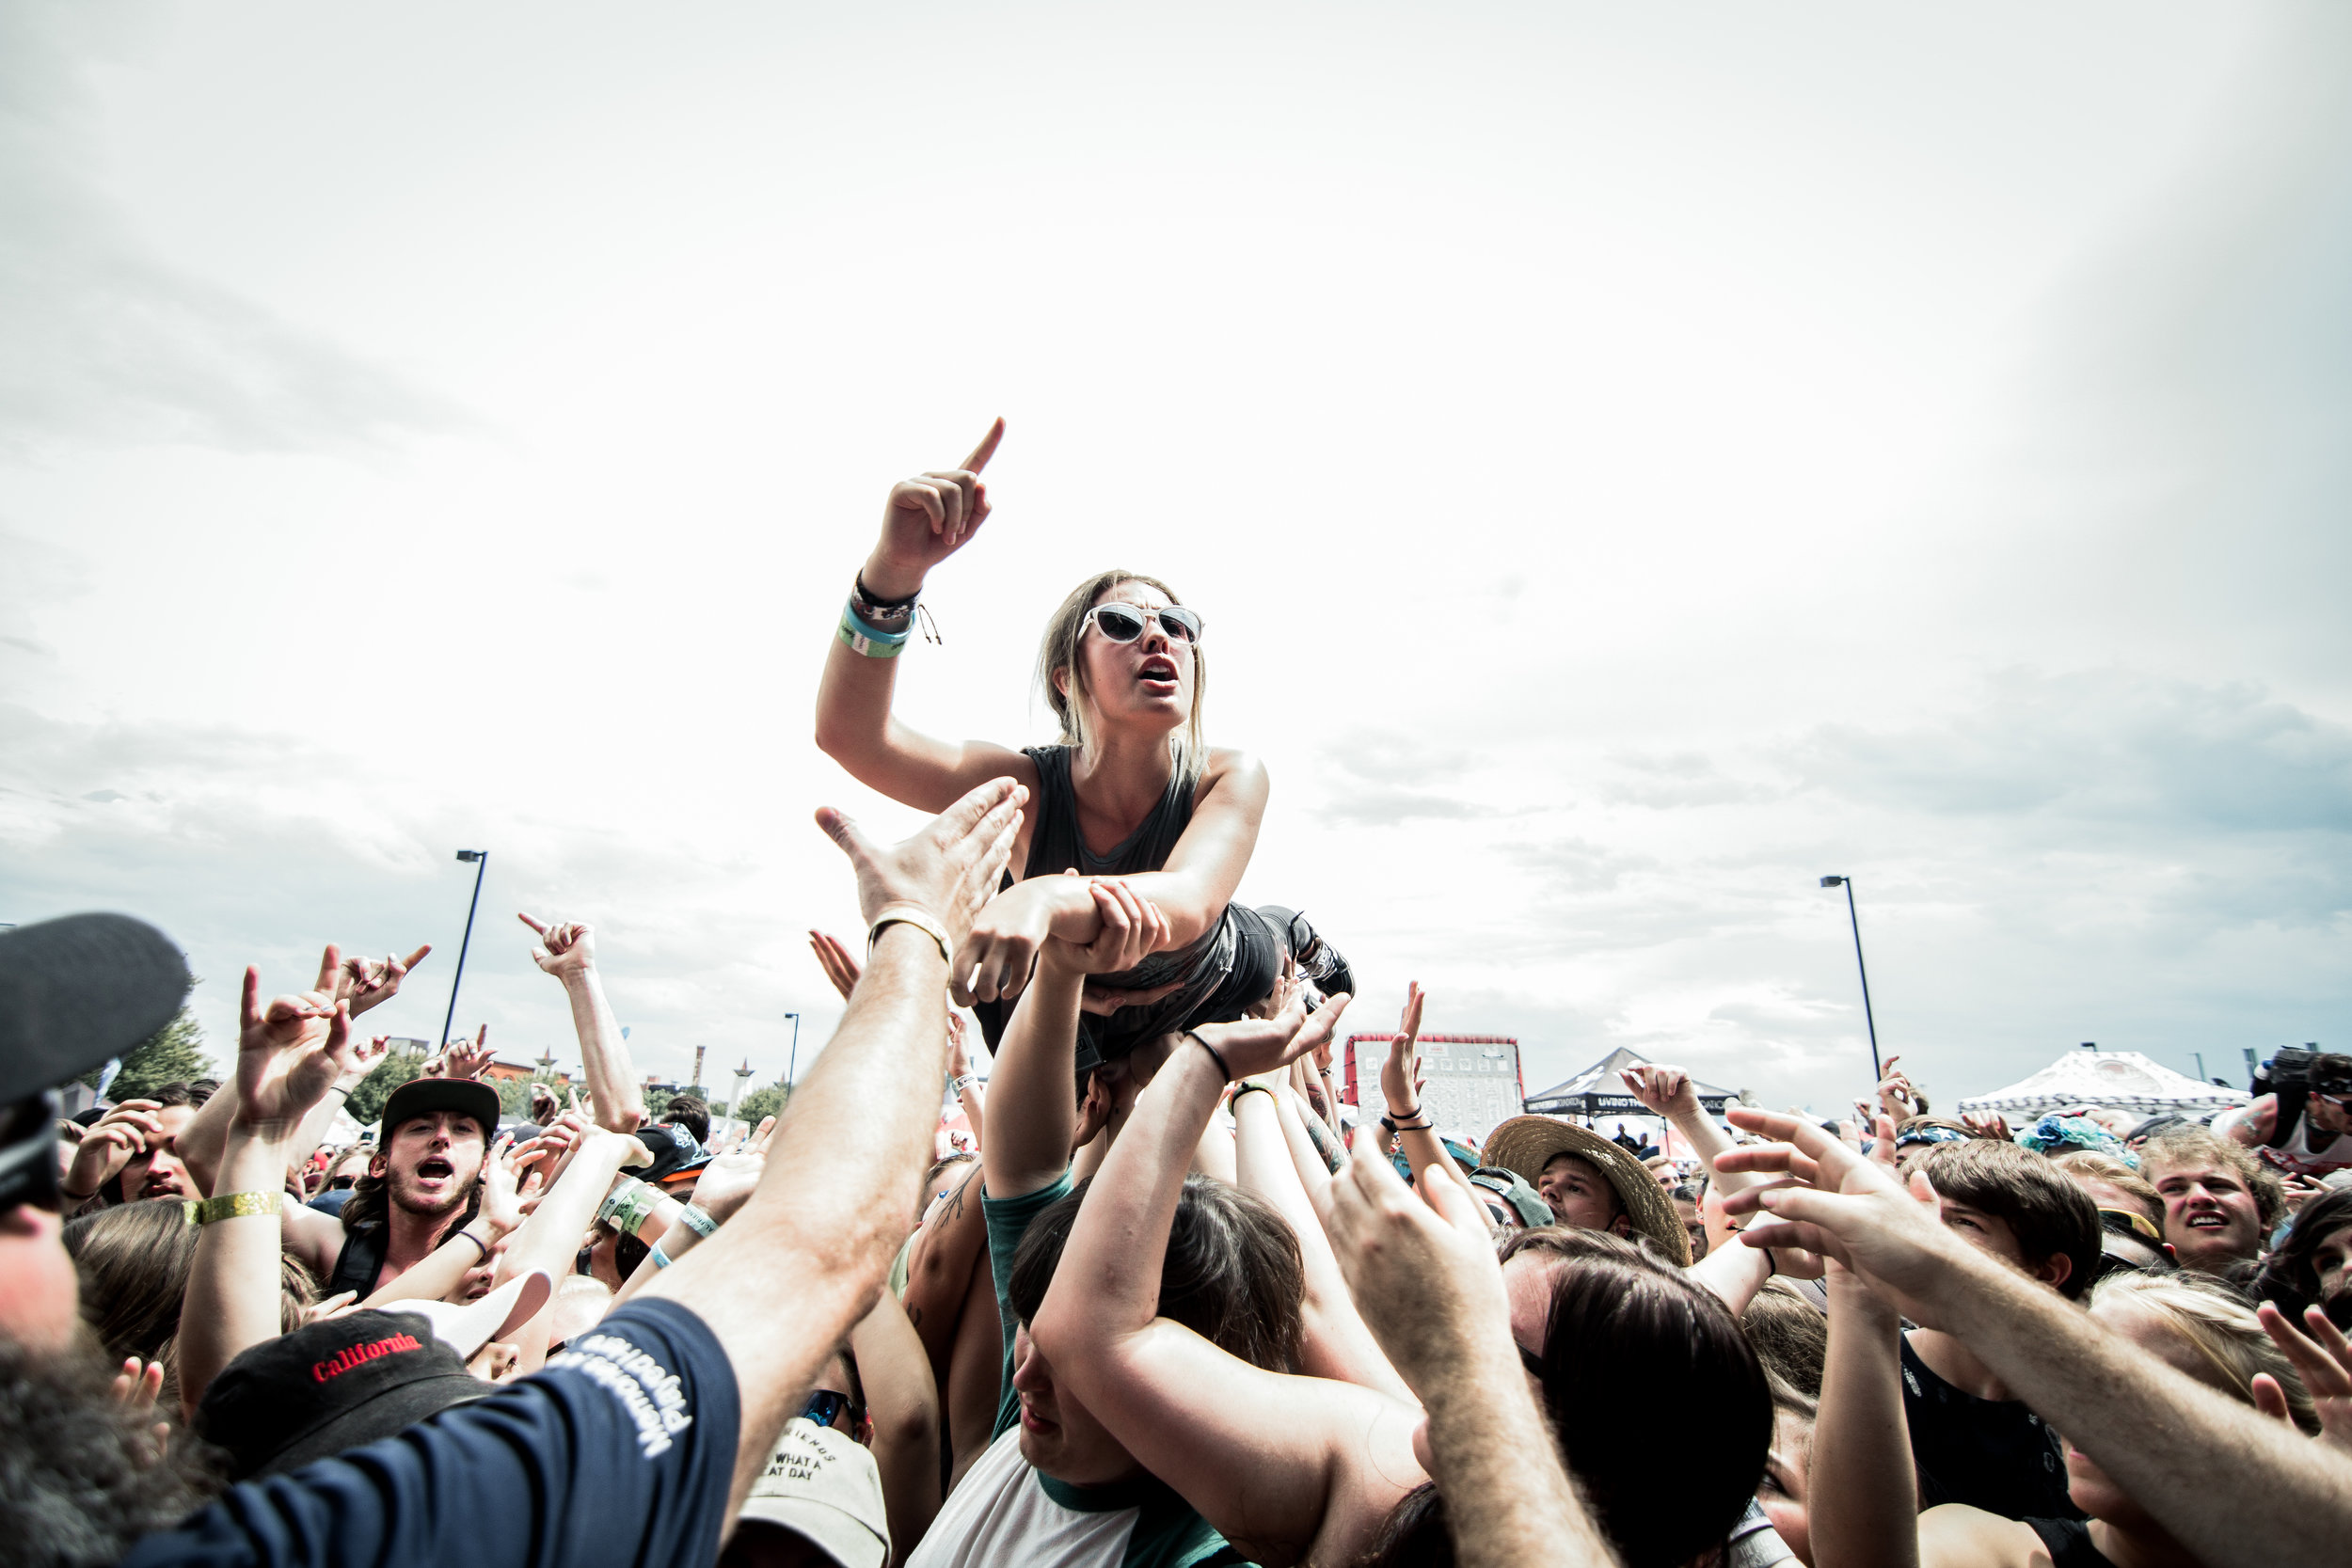 Crowd surfer at Warped. Thanks to Facebook, I was able to find who this chick was and send her the photo.